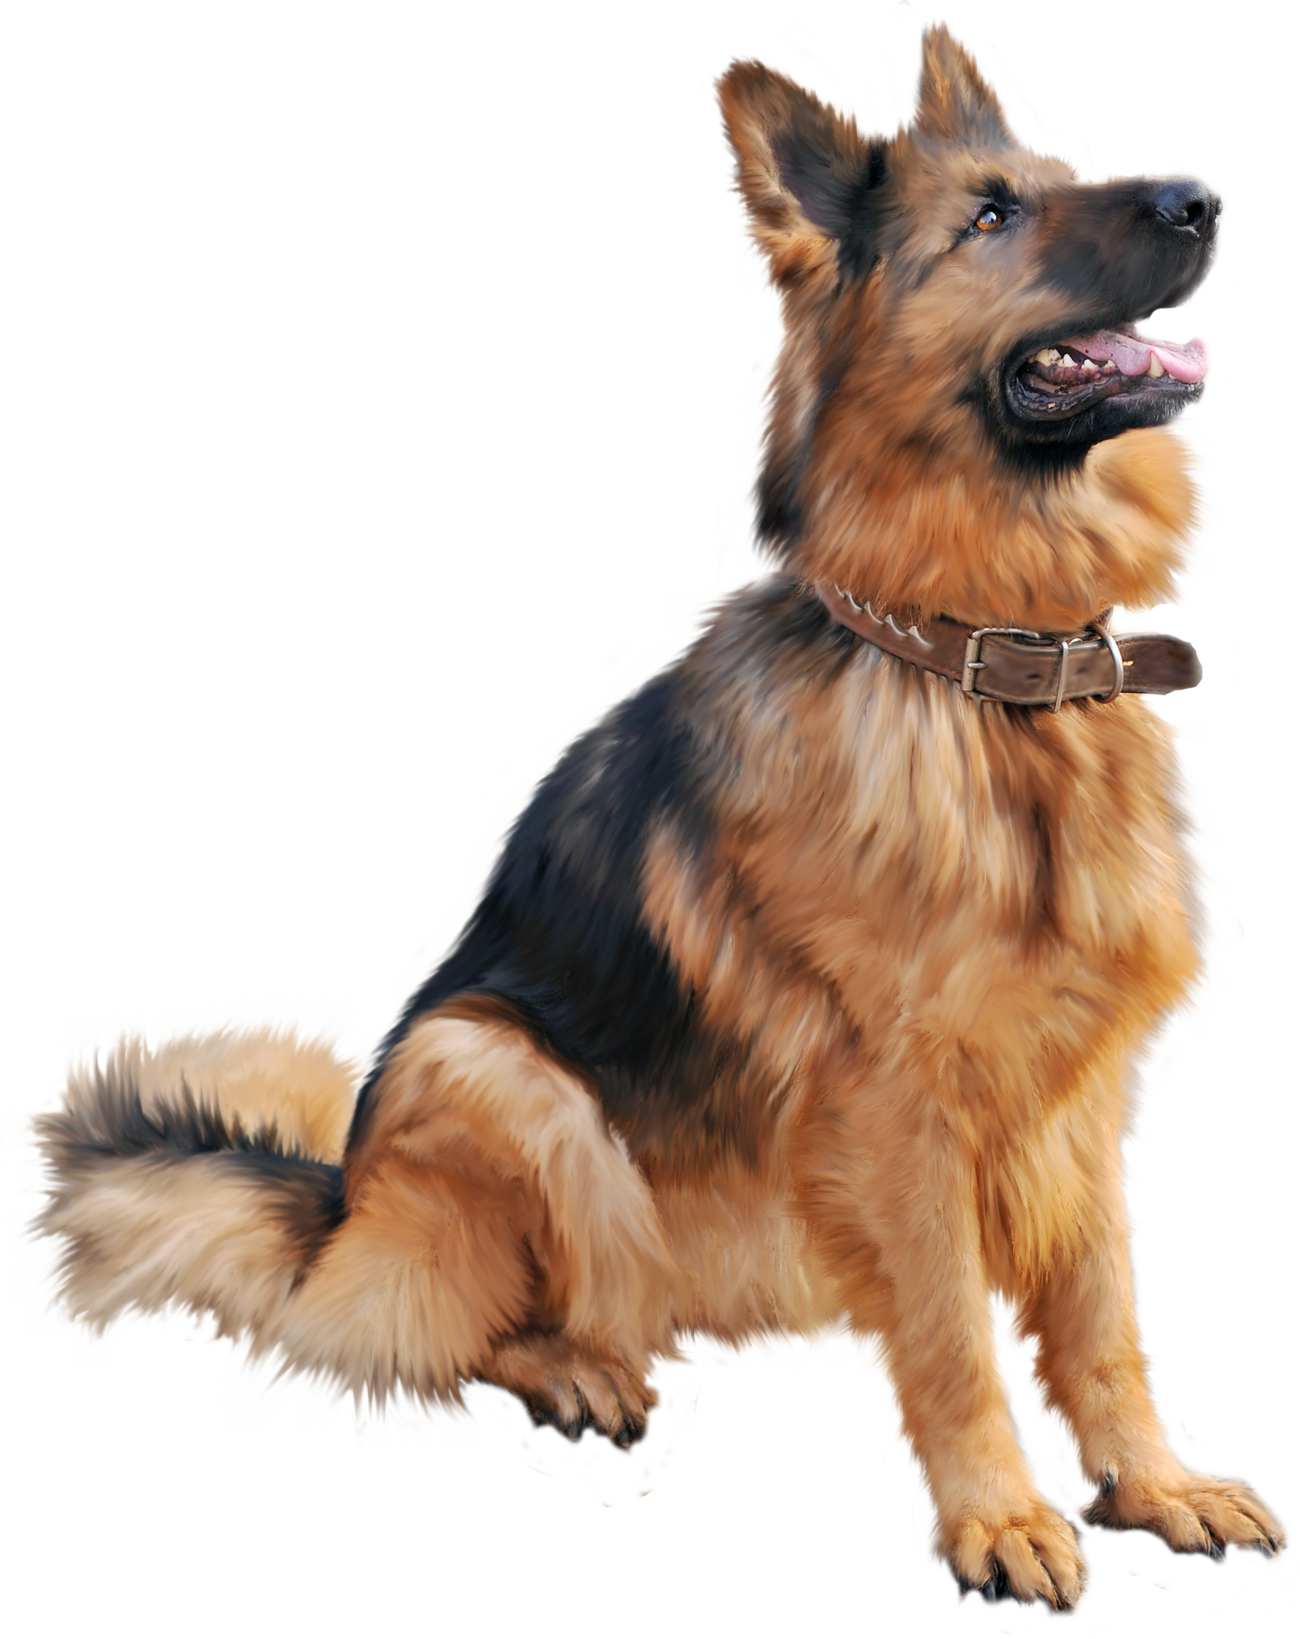 PNG HD Dogs - 123352